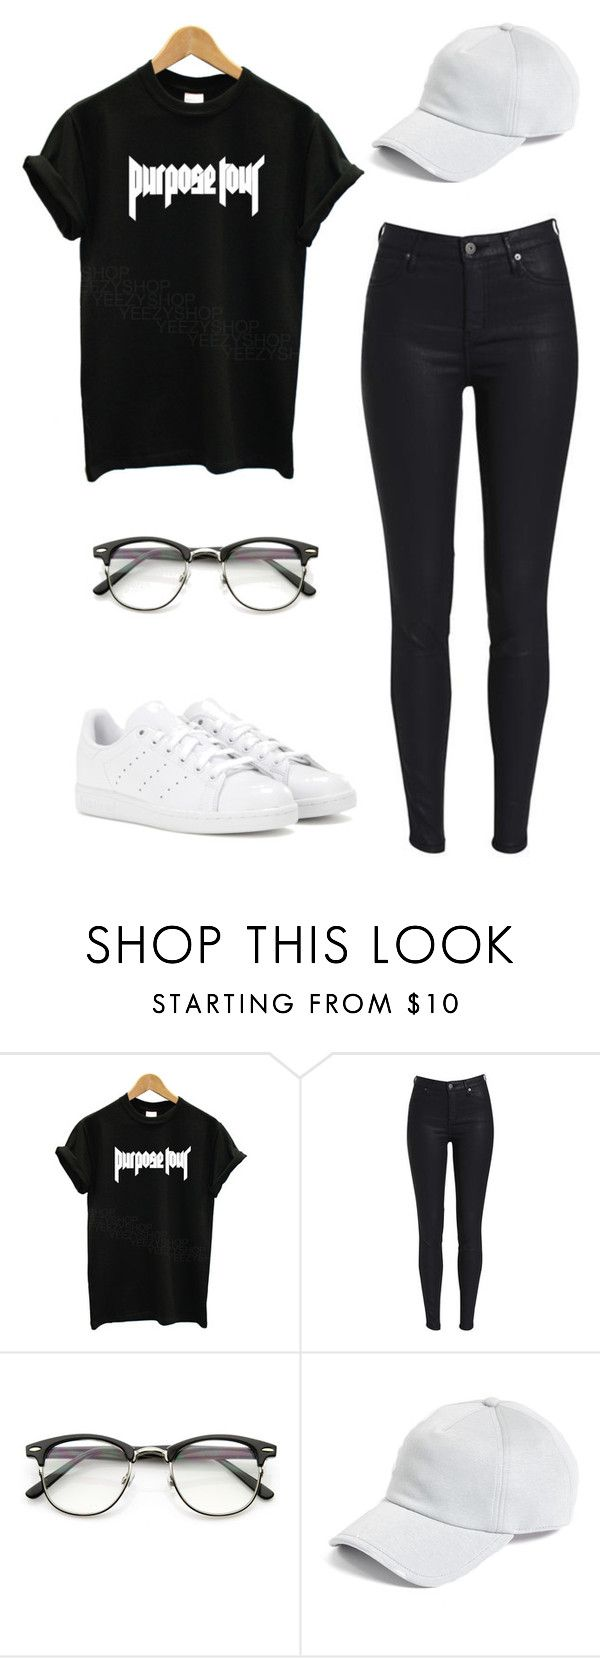 """""""PURPOSE TOUR CONCERT"""" by ariadnaschz ❤ liked on Polyvore featuring Justin Bieber, rag & bone and adidas"""